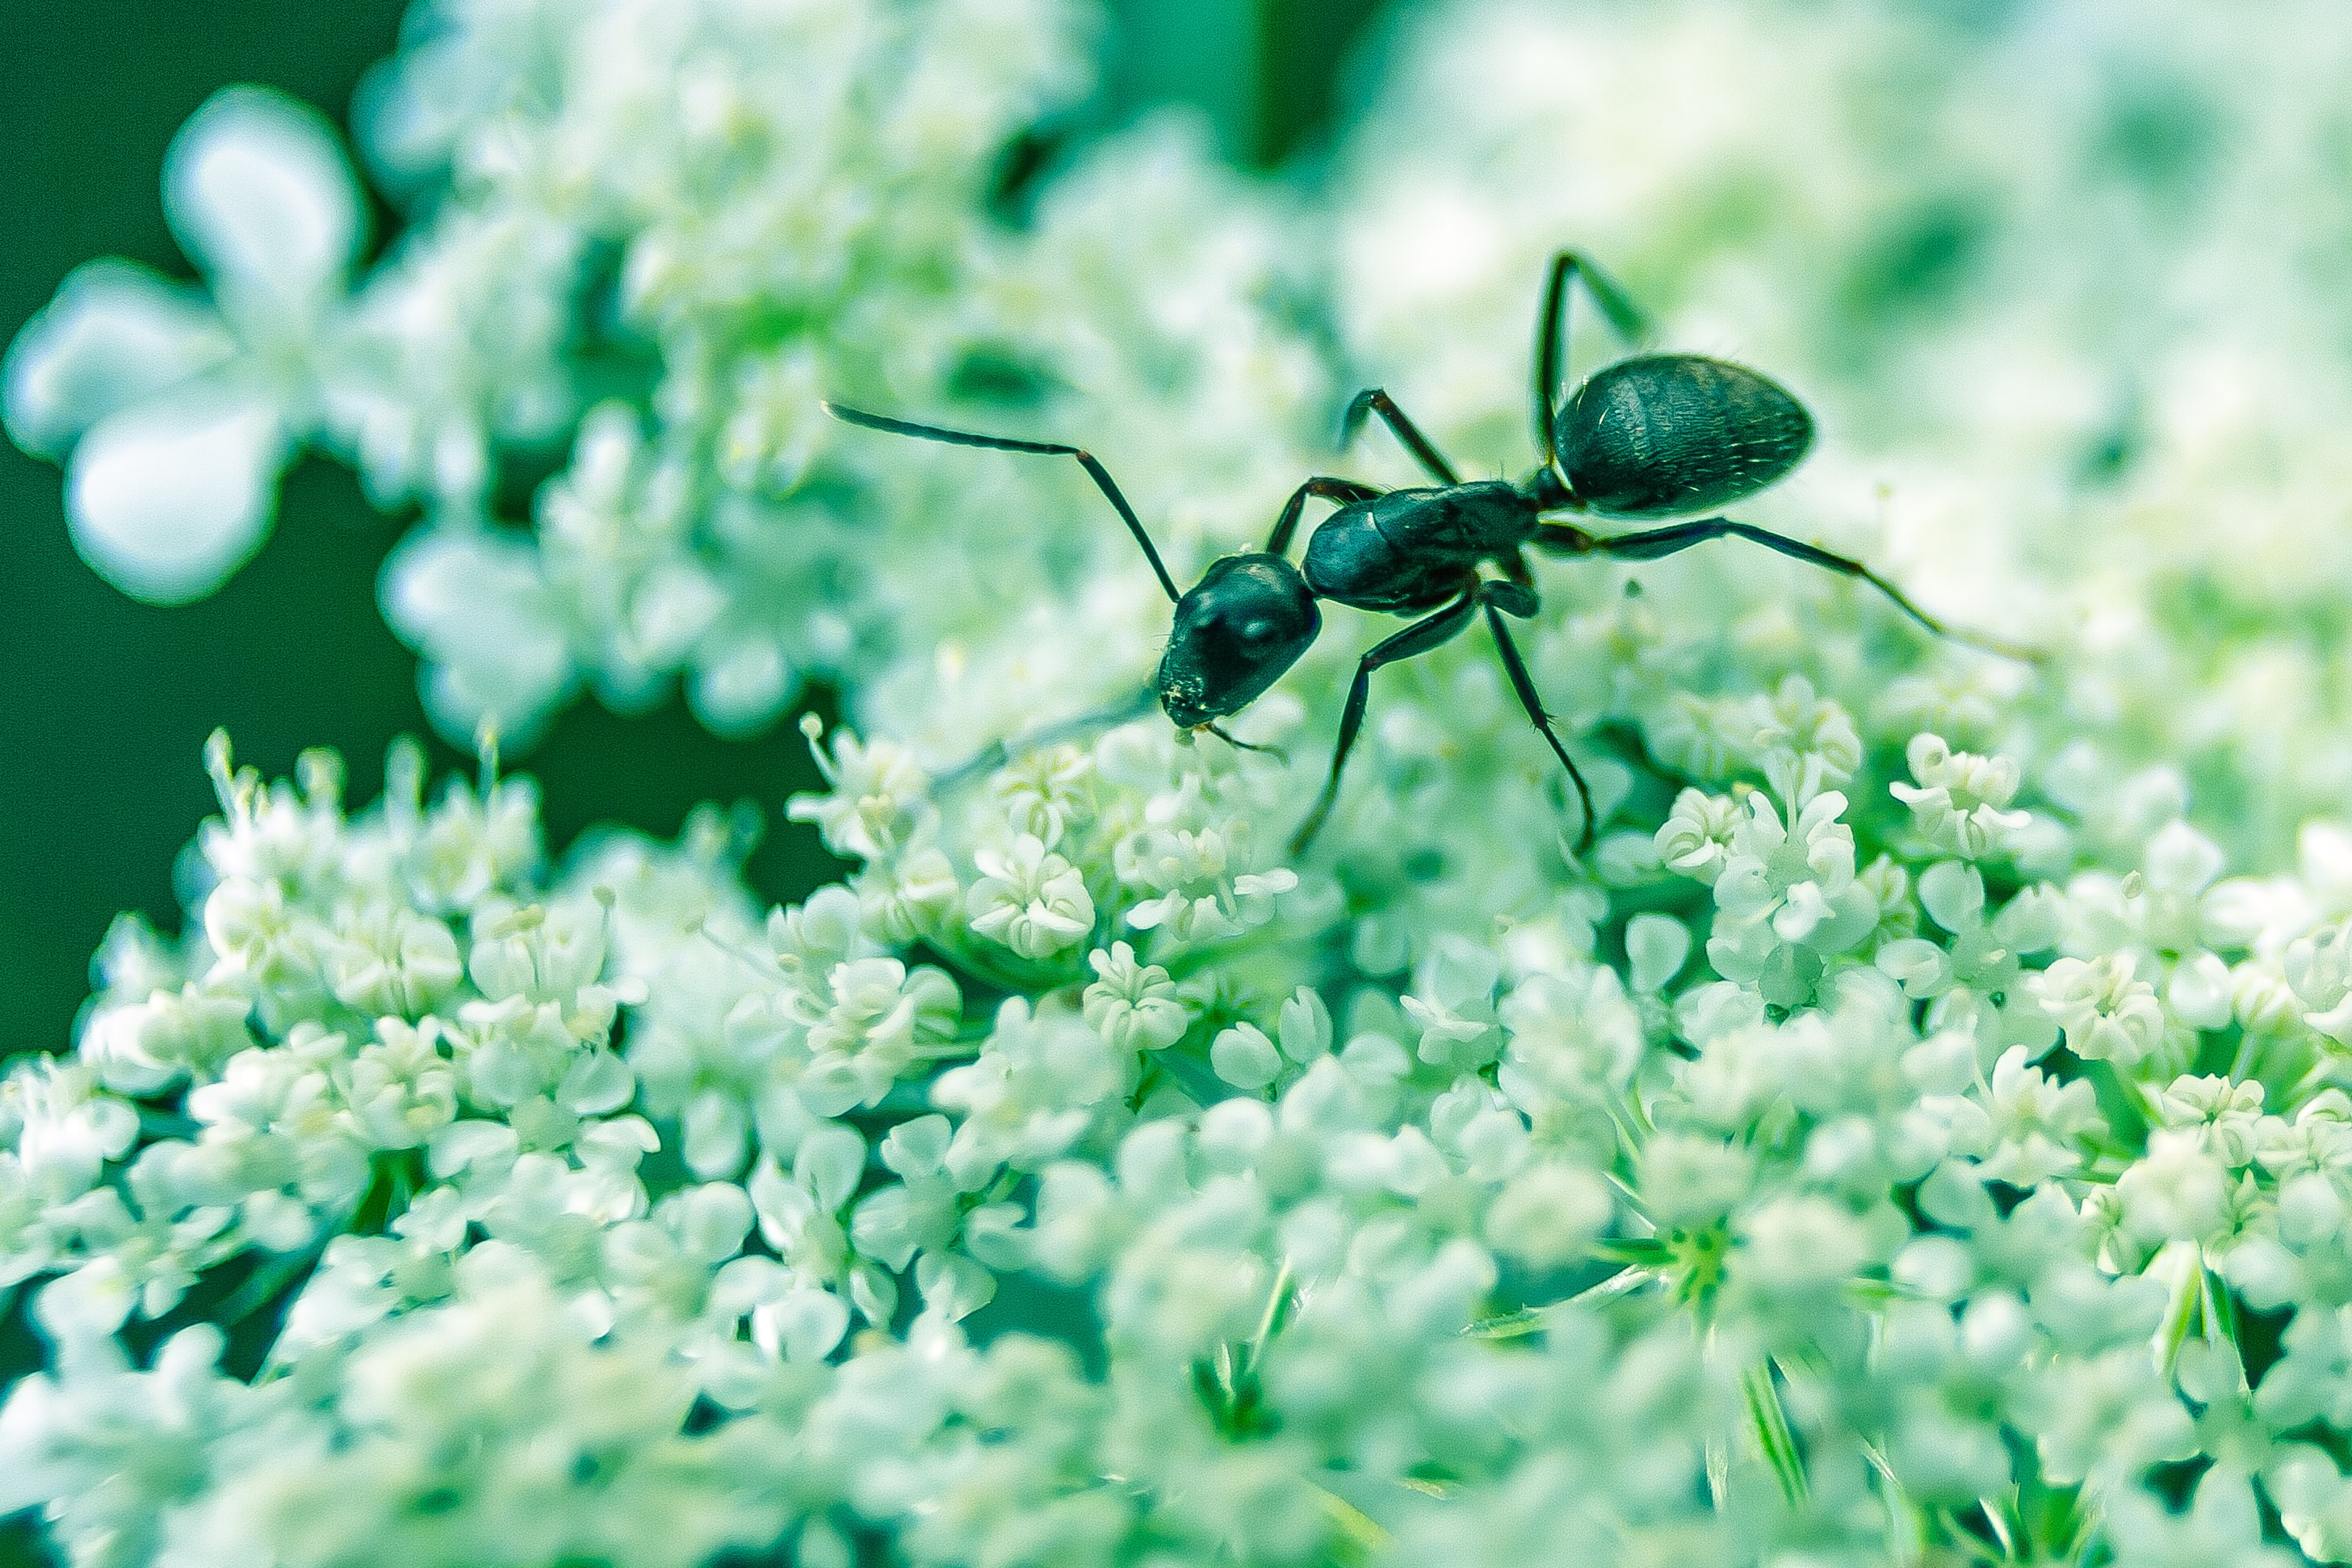 Small ant crawls over white flowers